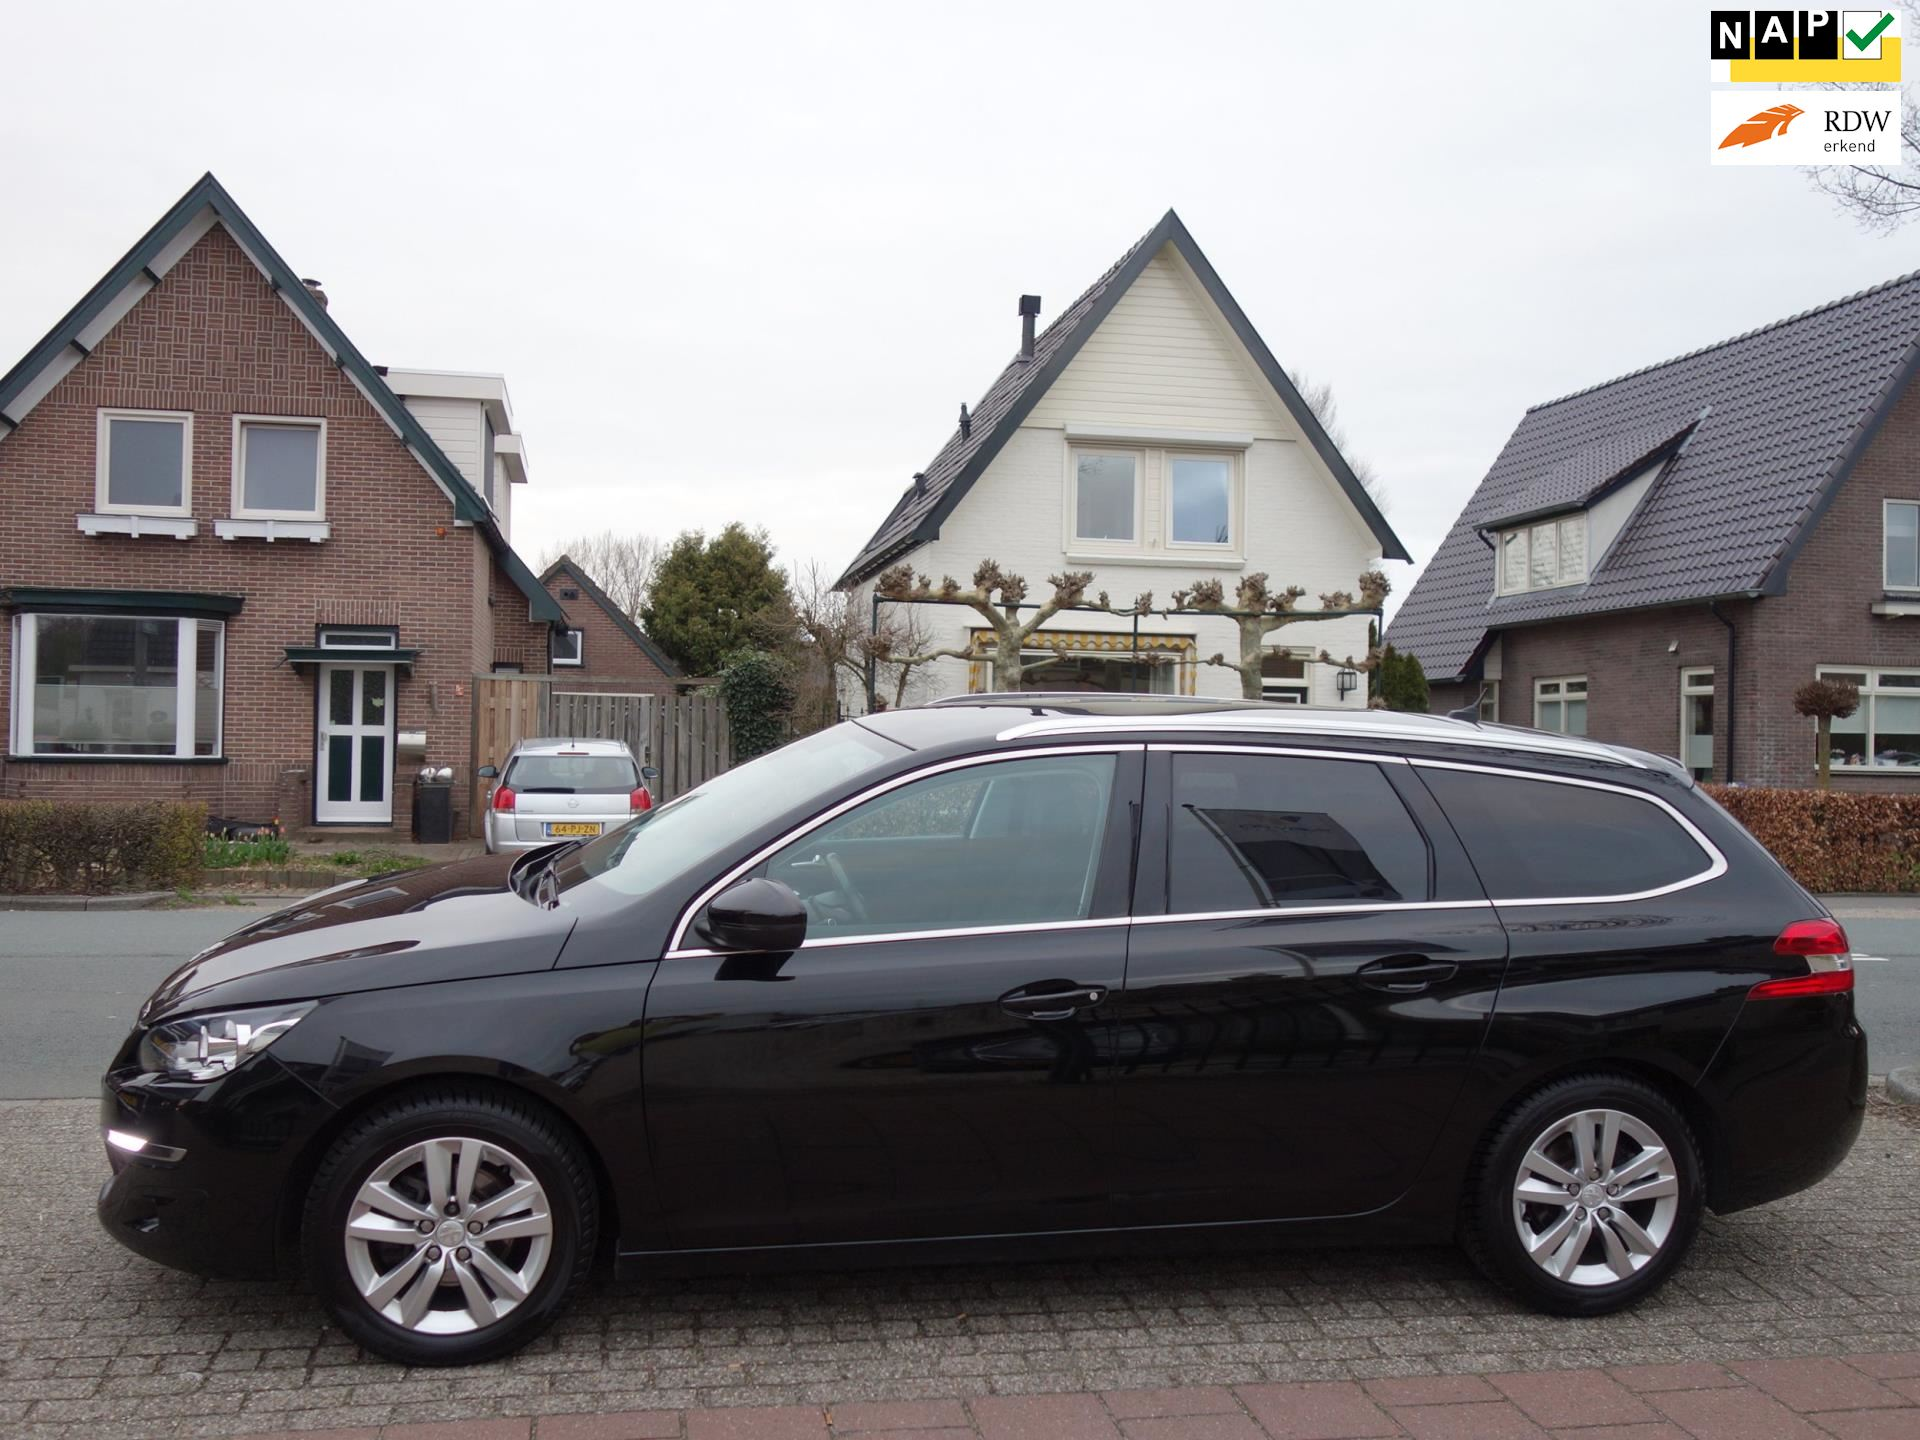 Peugeot 308 SW occasion - De Vries Automotive Apeldoorn